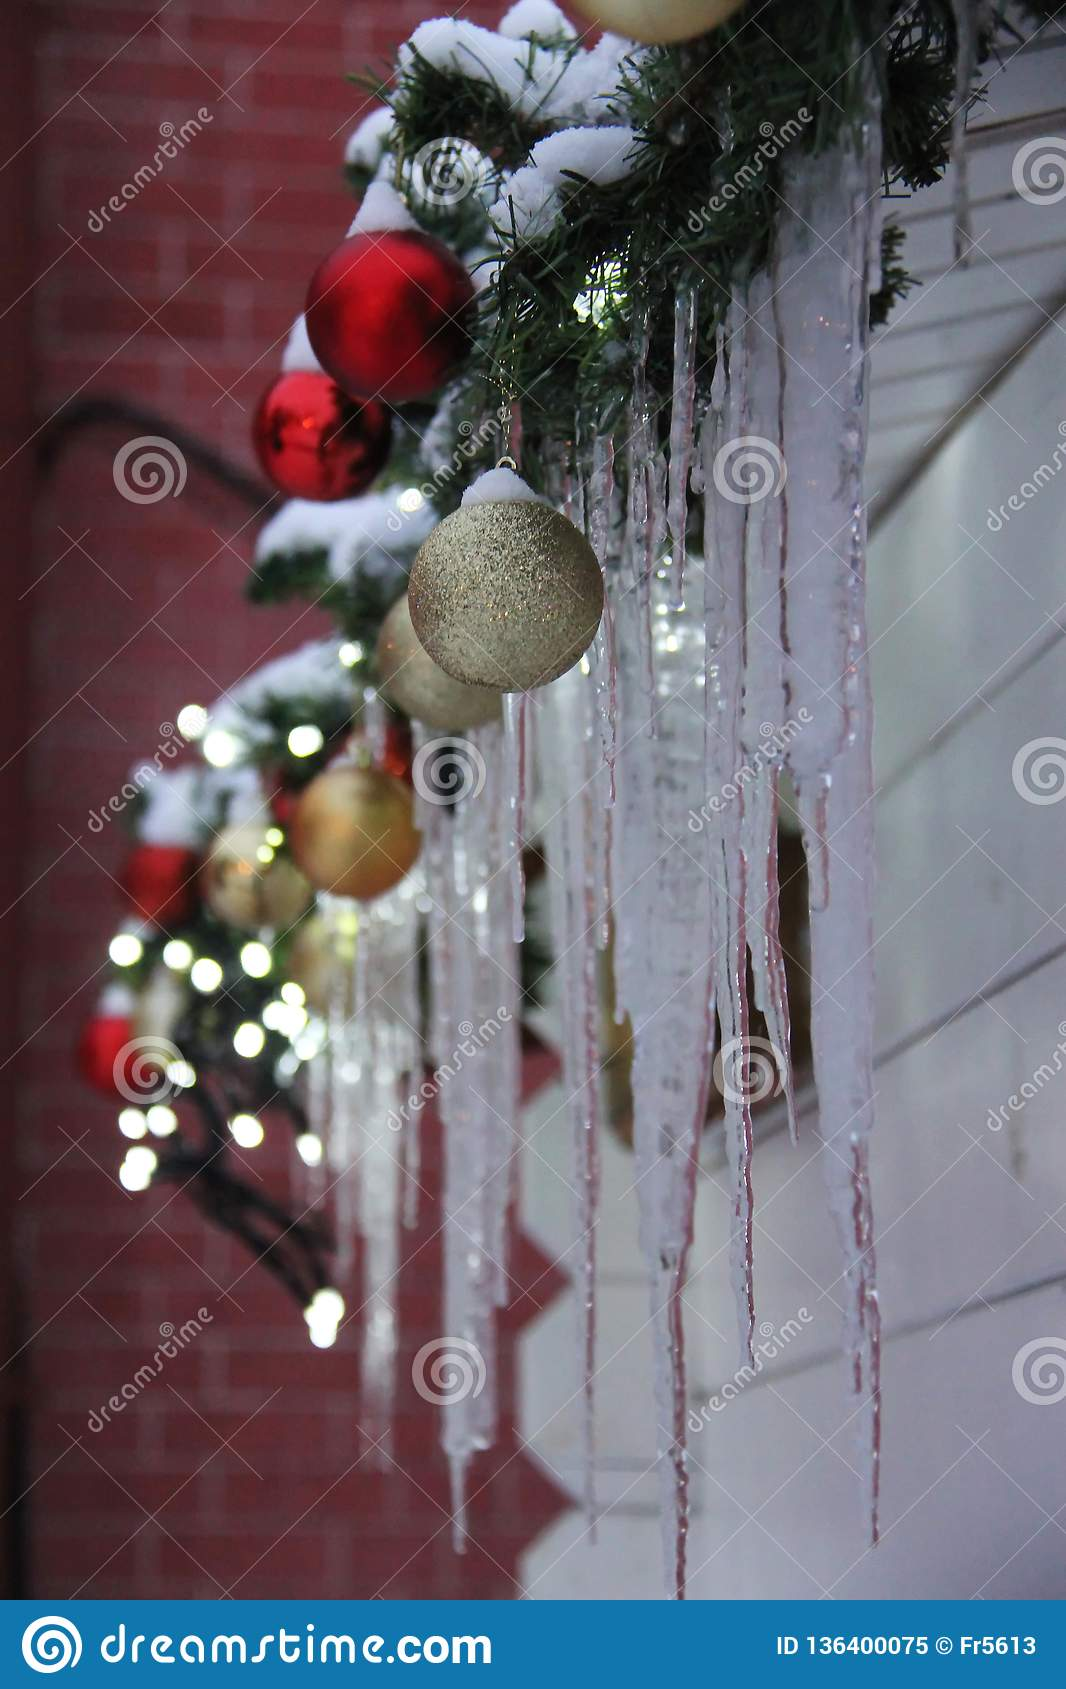 Frozen Christmas Decorations.Christmas Decoration In The Form Of Colored Balls Stock